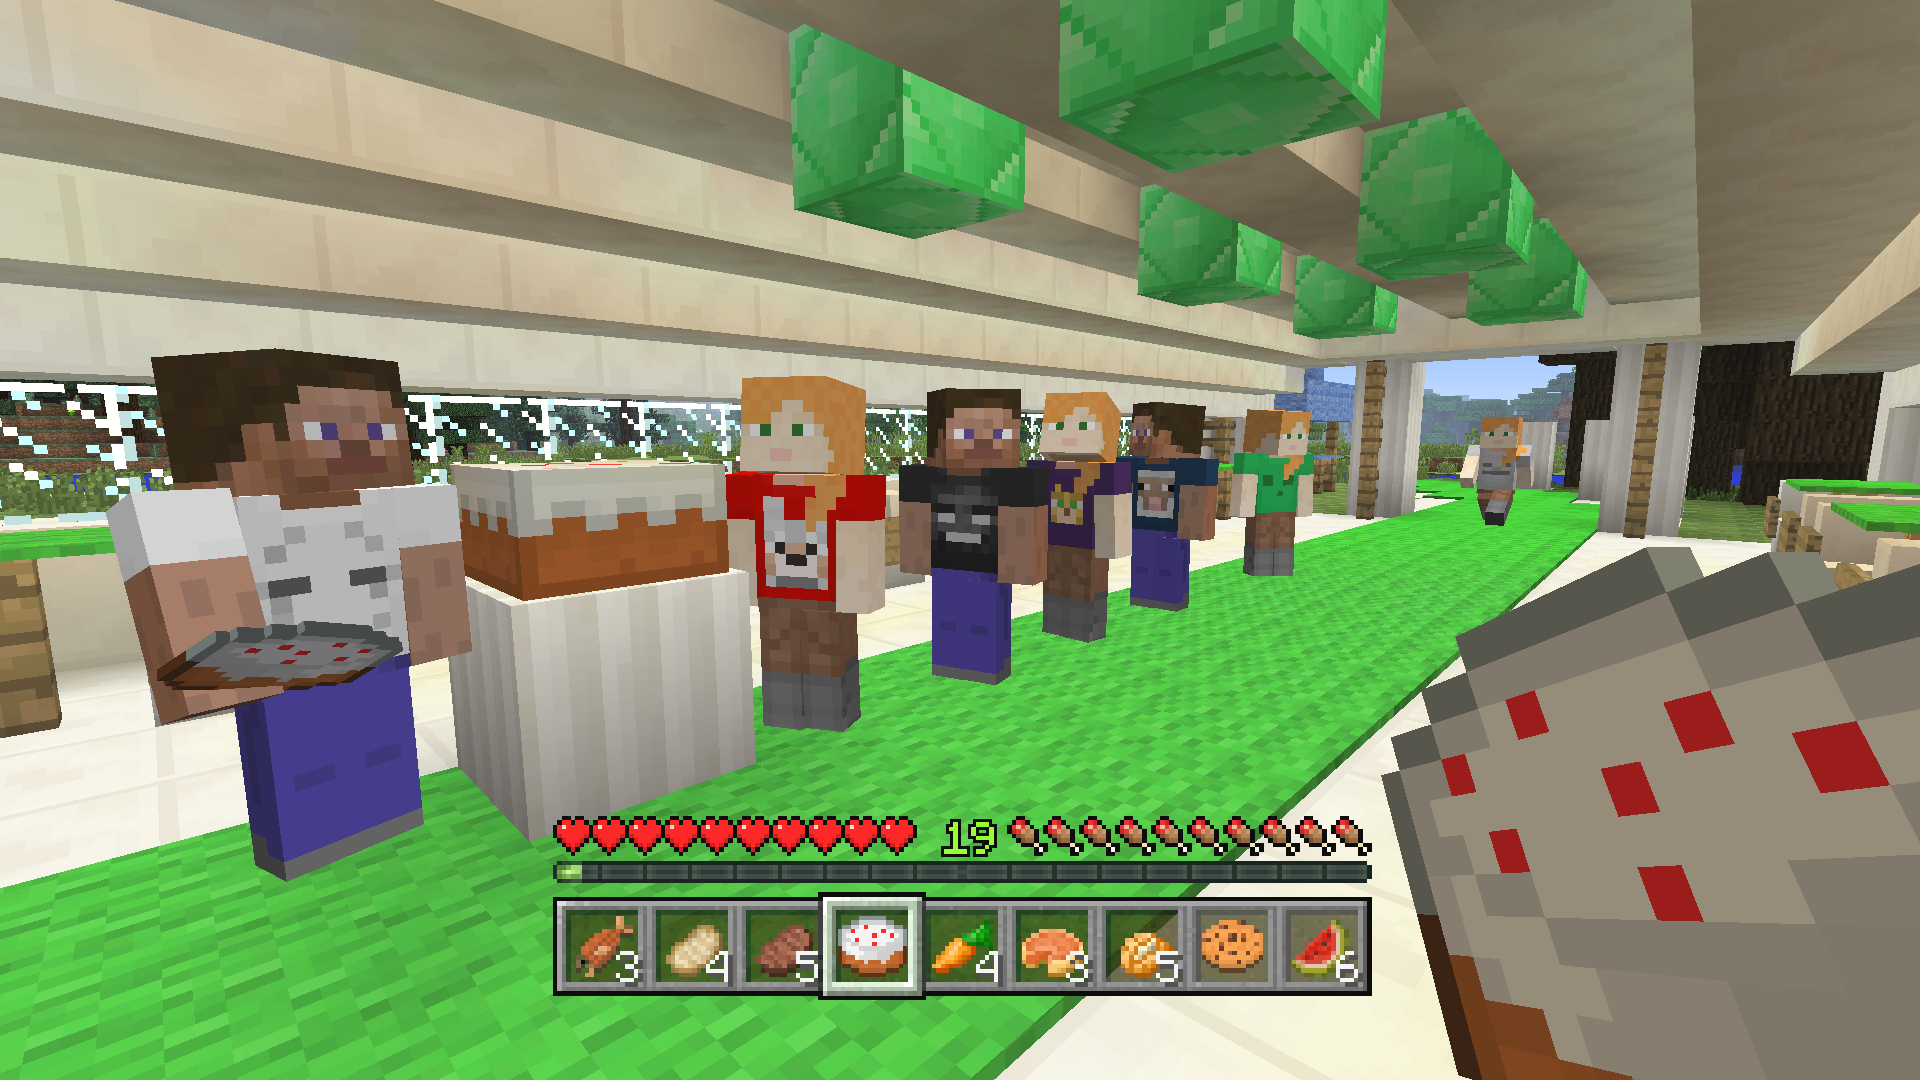 Minecraft Skin Pack for free on Xbox consoles